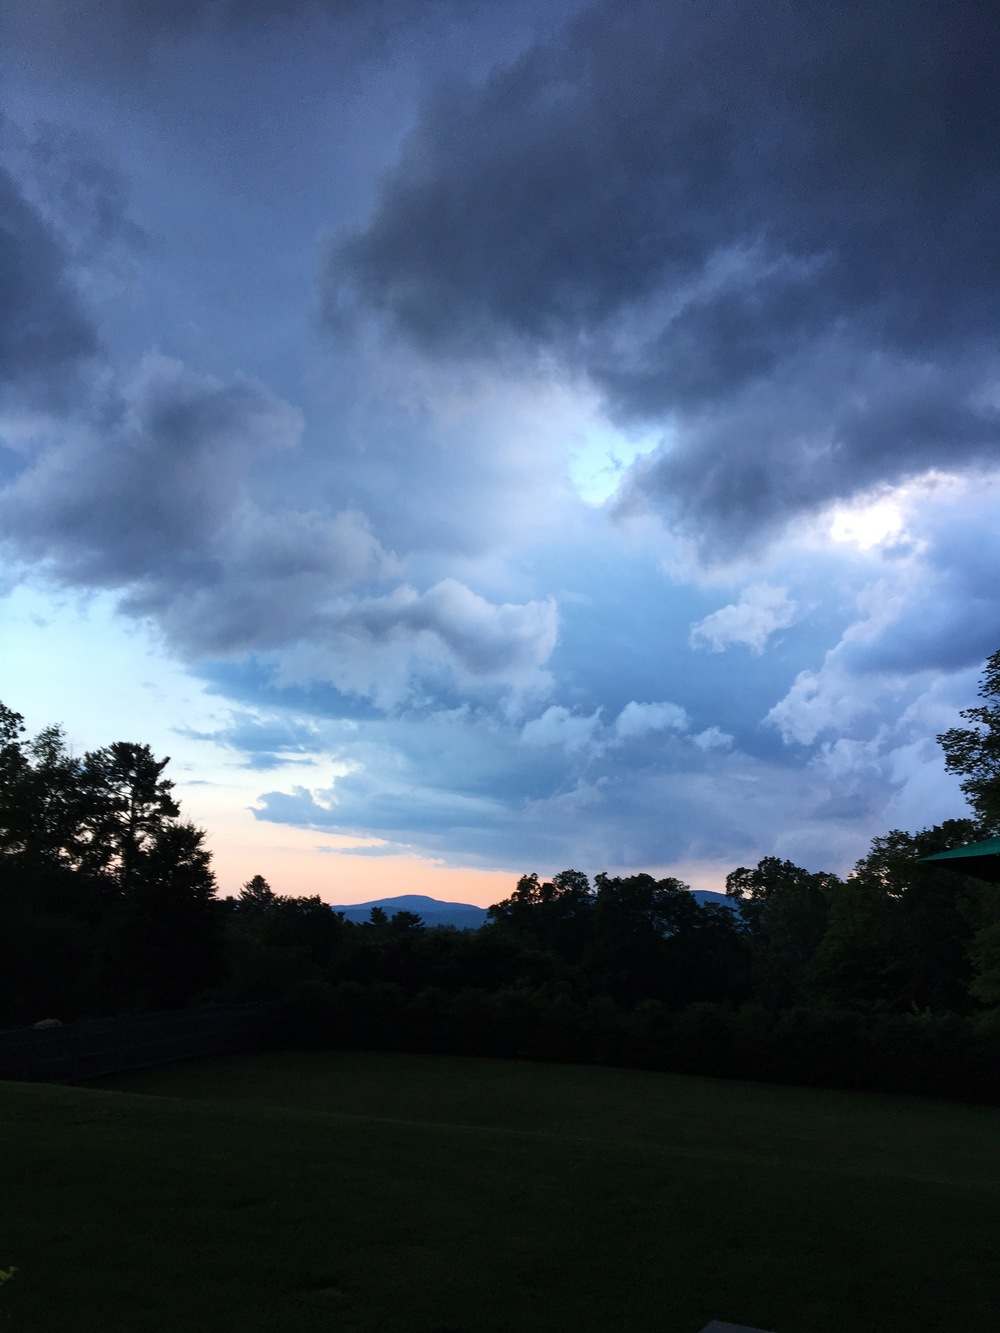 Classic Berkshires. You never know when a rain storm will roll in!